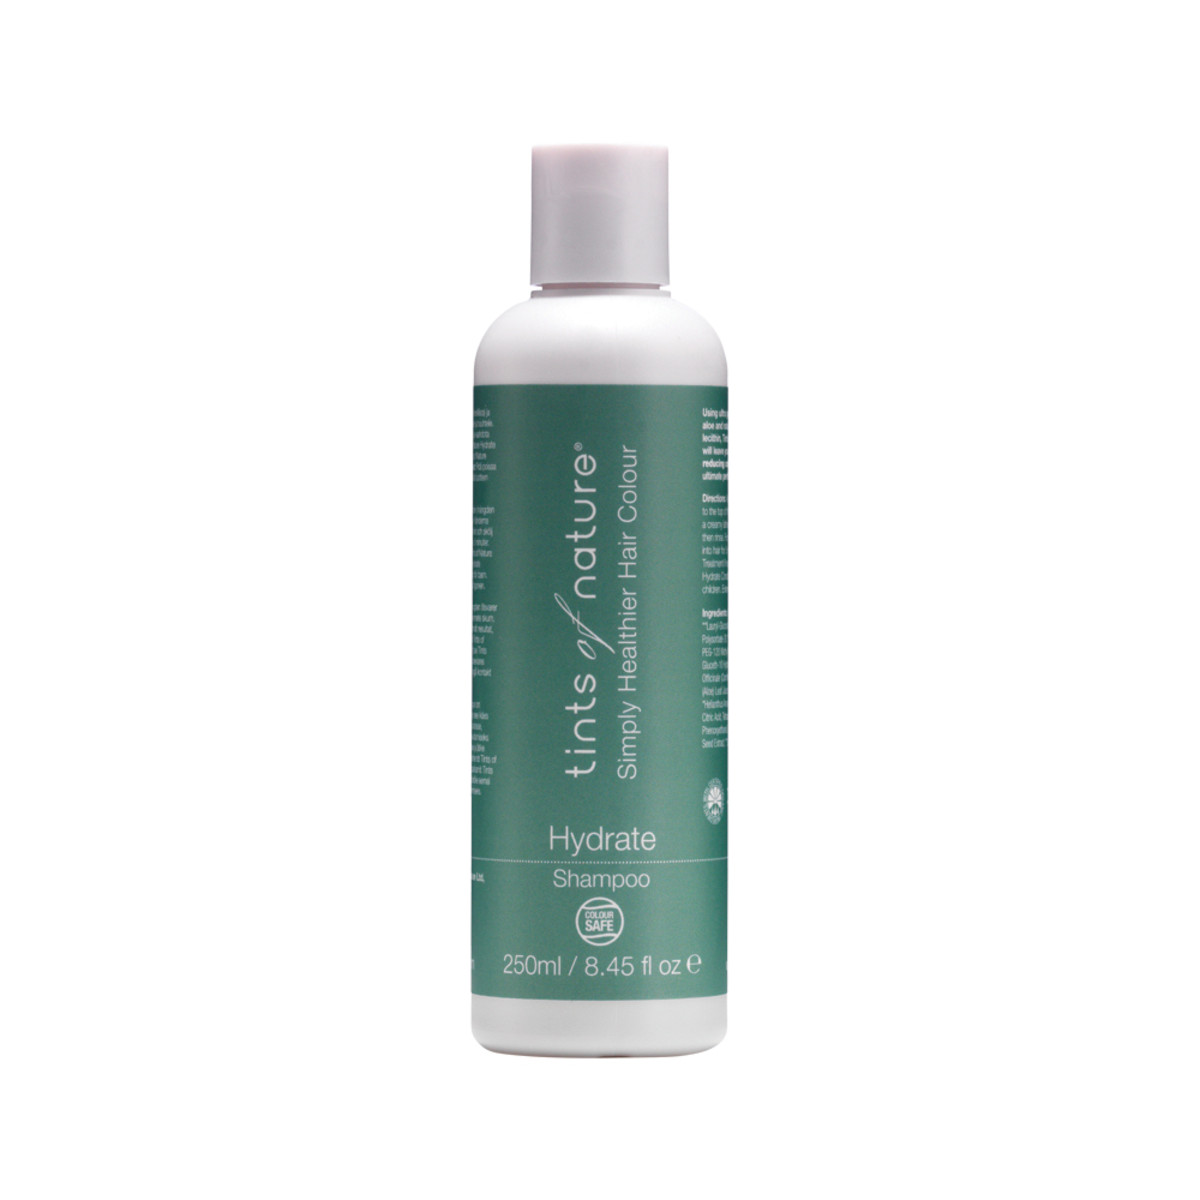 TINTS OF NATURE Shampoo Hydrate 250ml